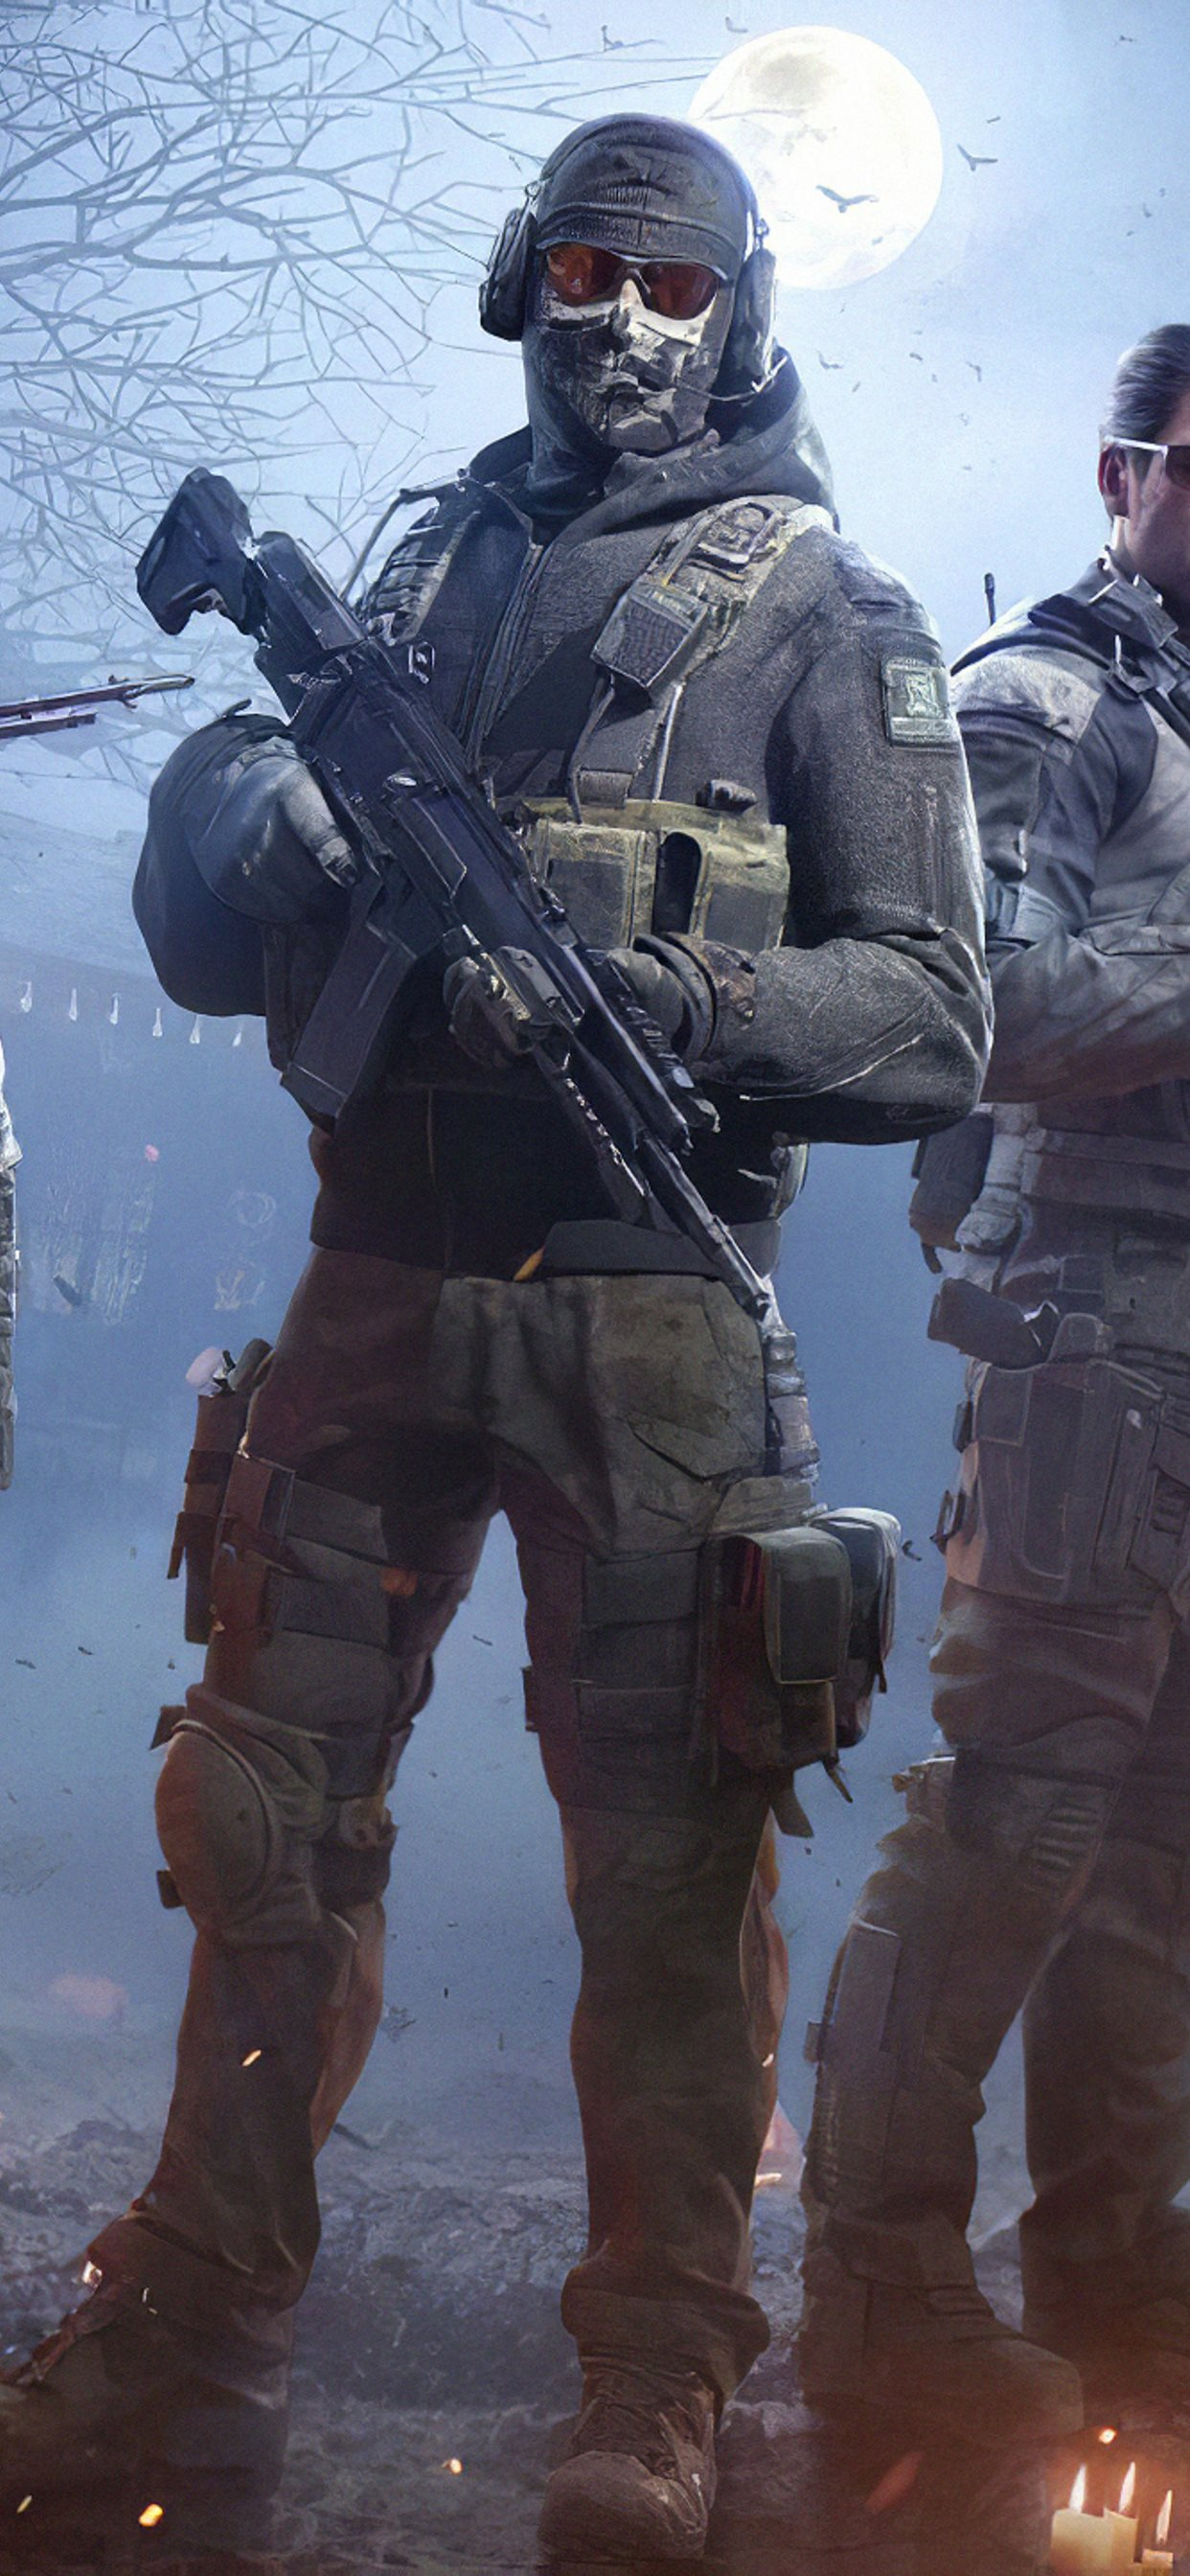 Call Of Duty Mobile 2019 Game Iphone Wallpapers Free Download